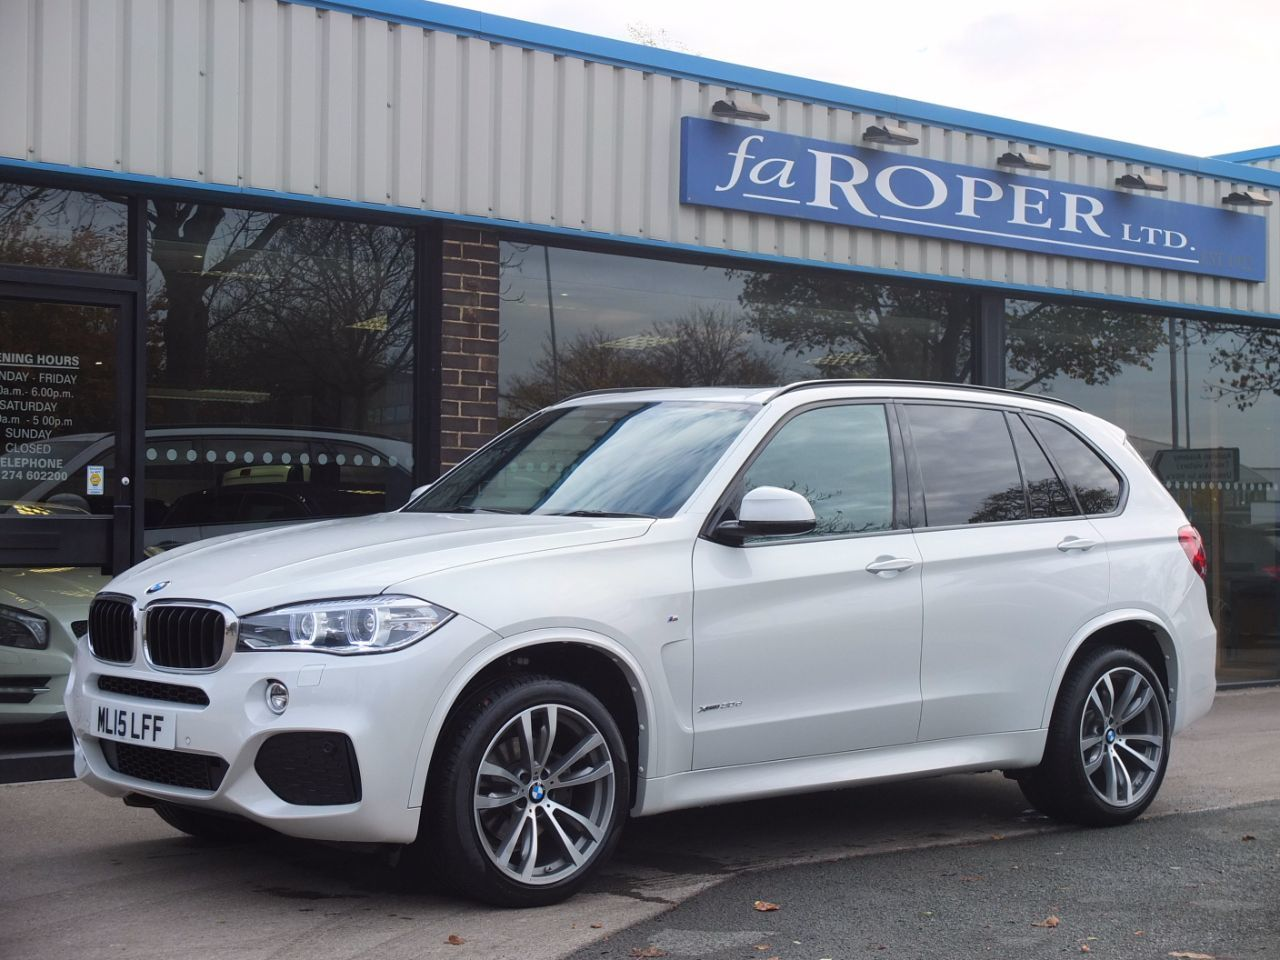 second hand bmw x5 xdrive30d m sport auto for sale in bradford west yorkshire fa roper ltd. Black Bedroom Furniture Sets. Home Design Ideas